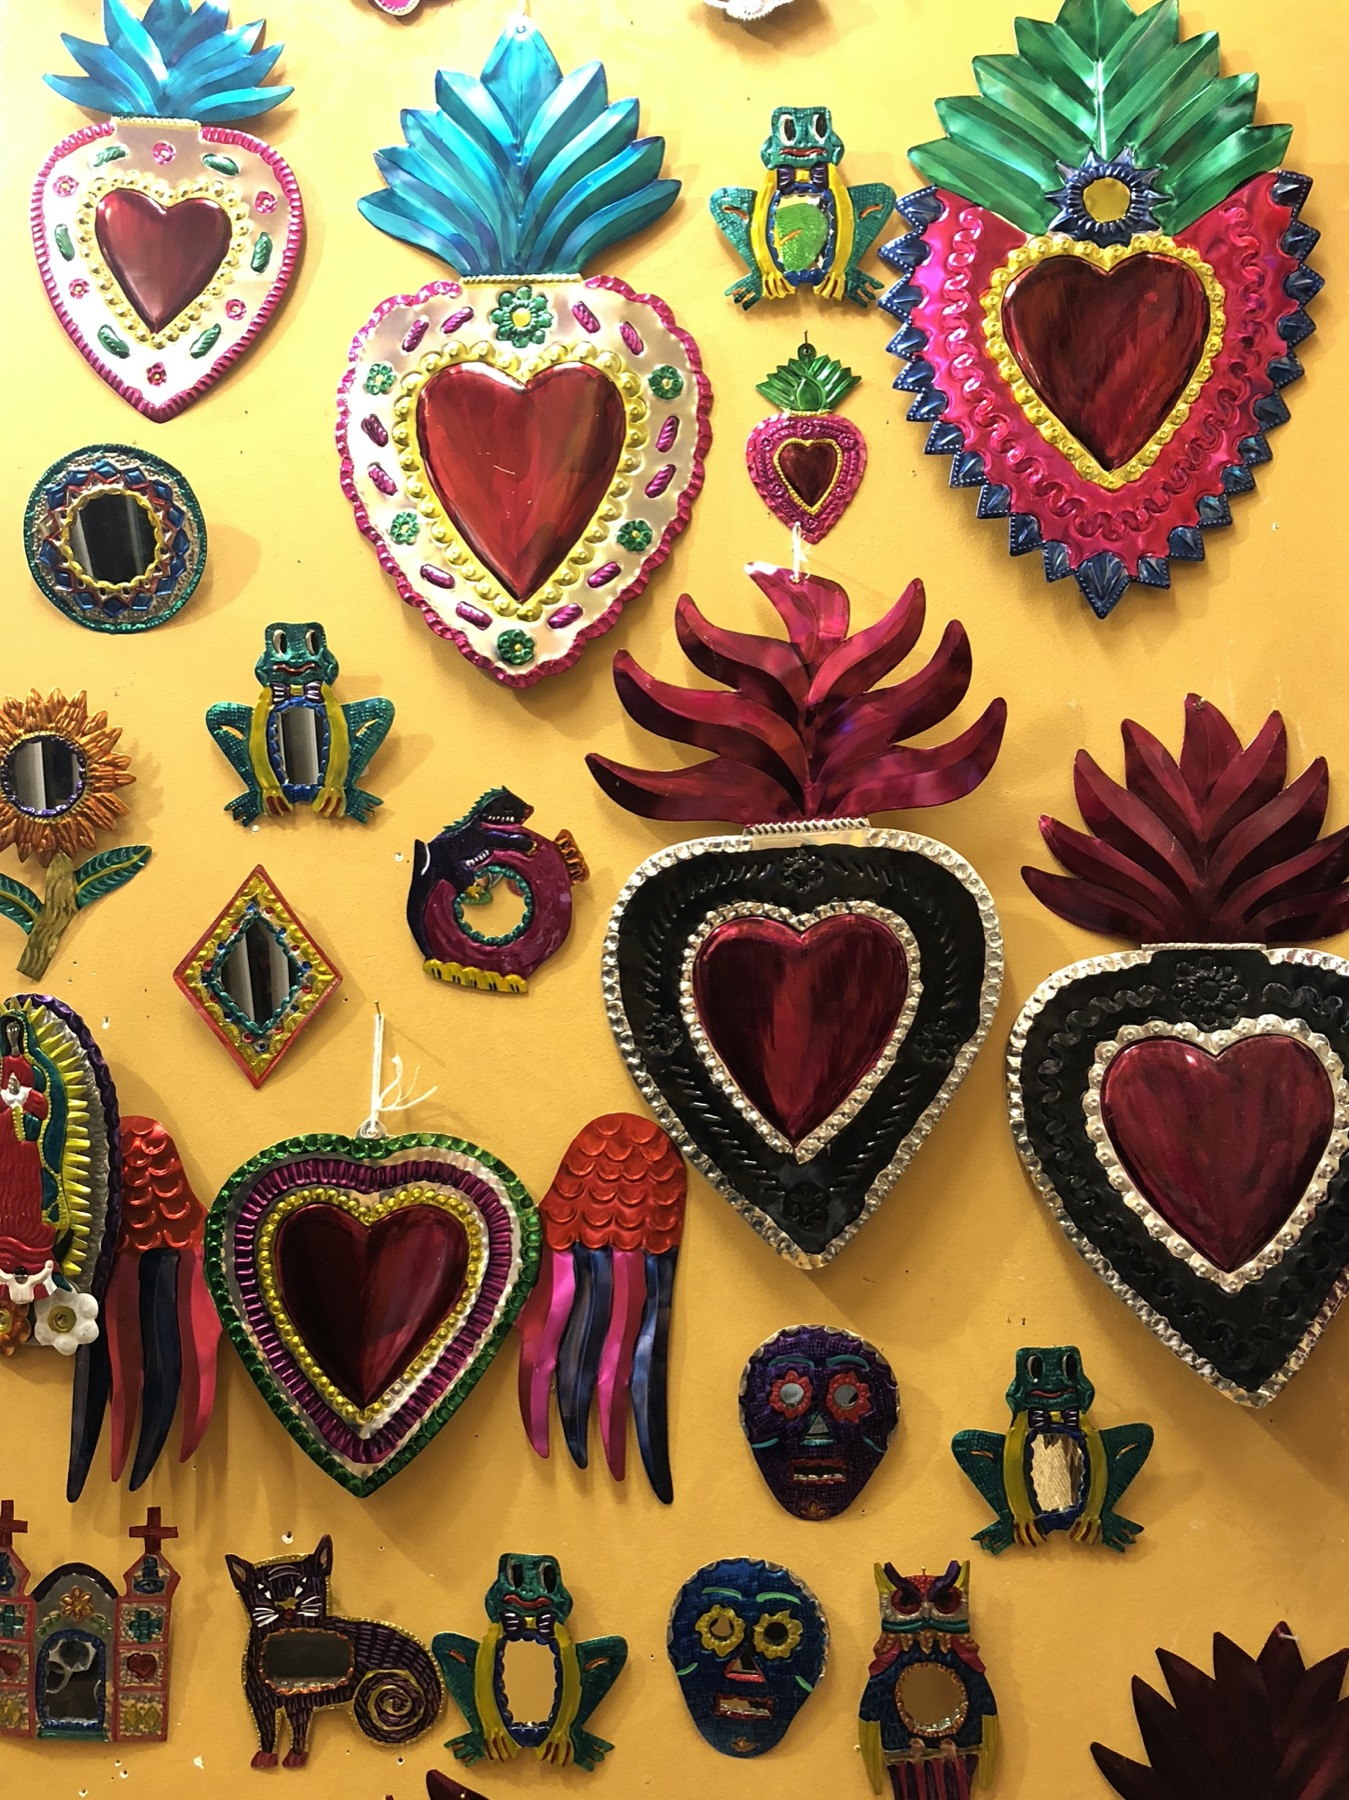 Hand crafted mirrors with traditional Mexican Symbols